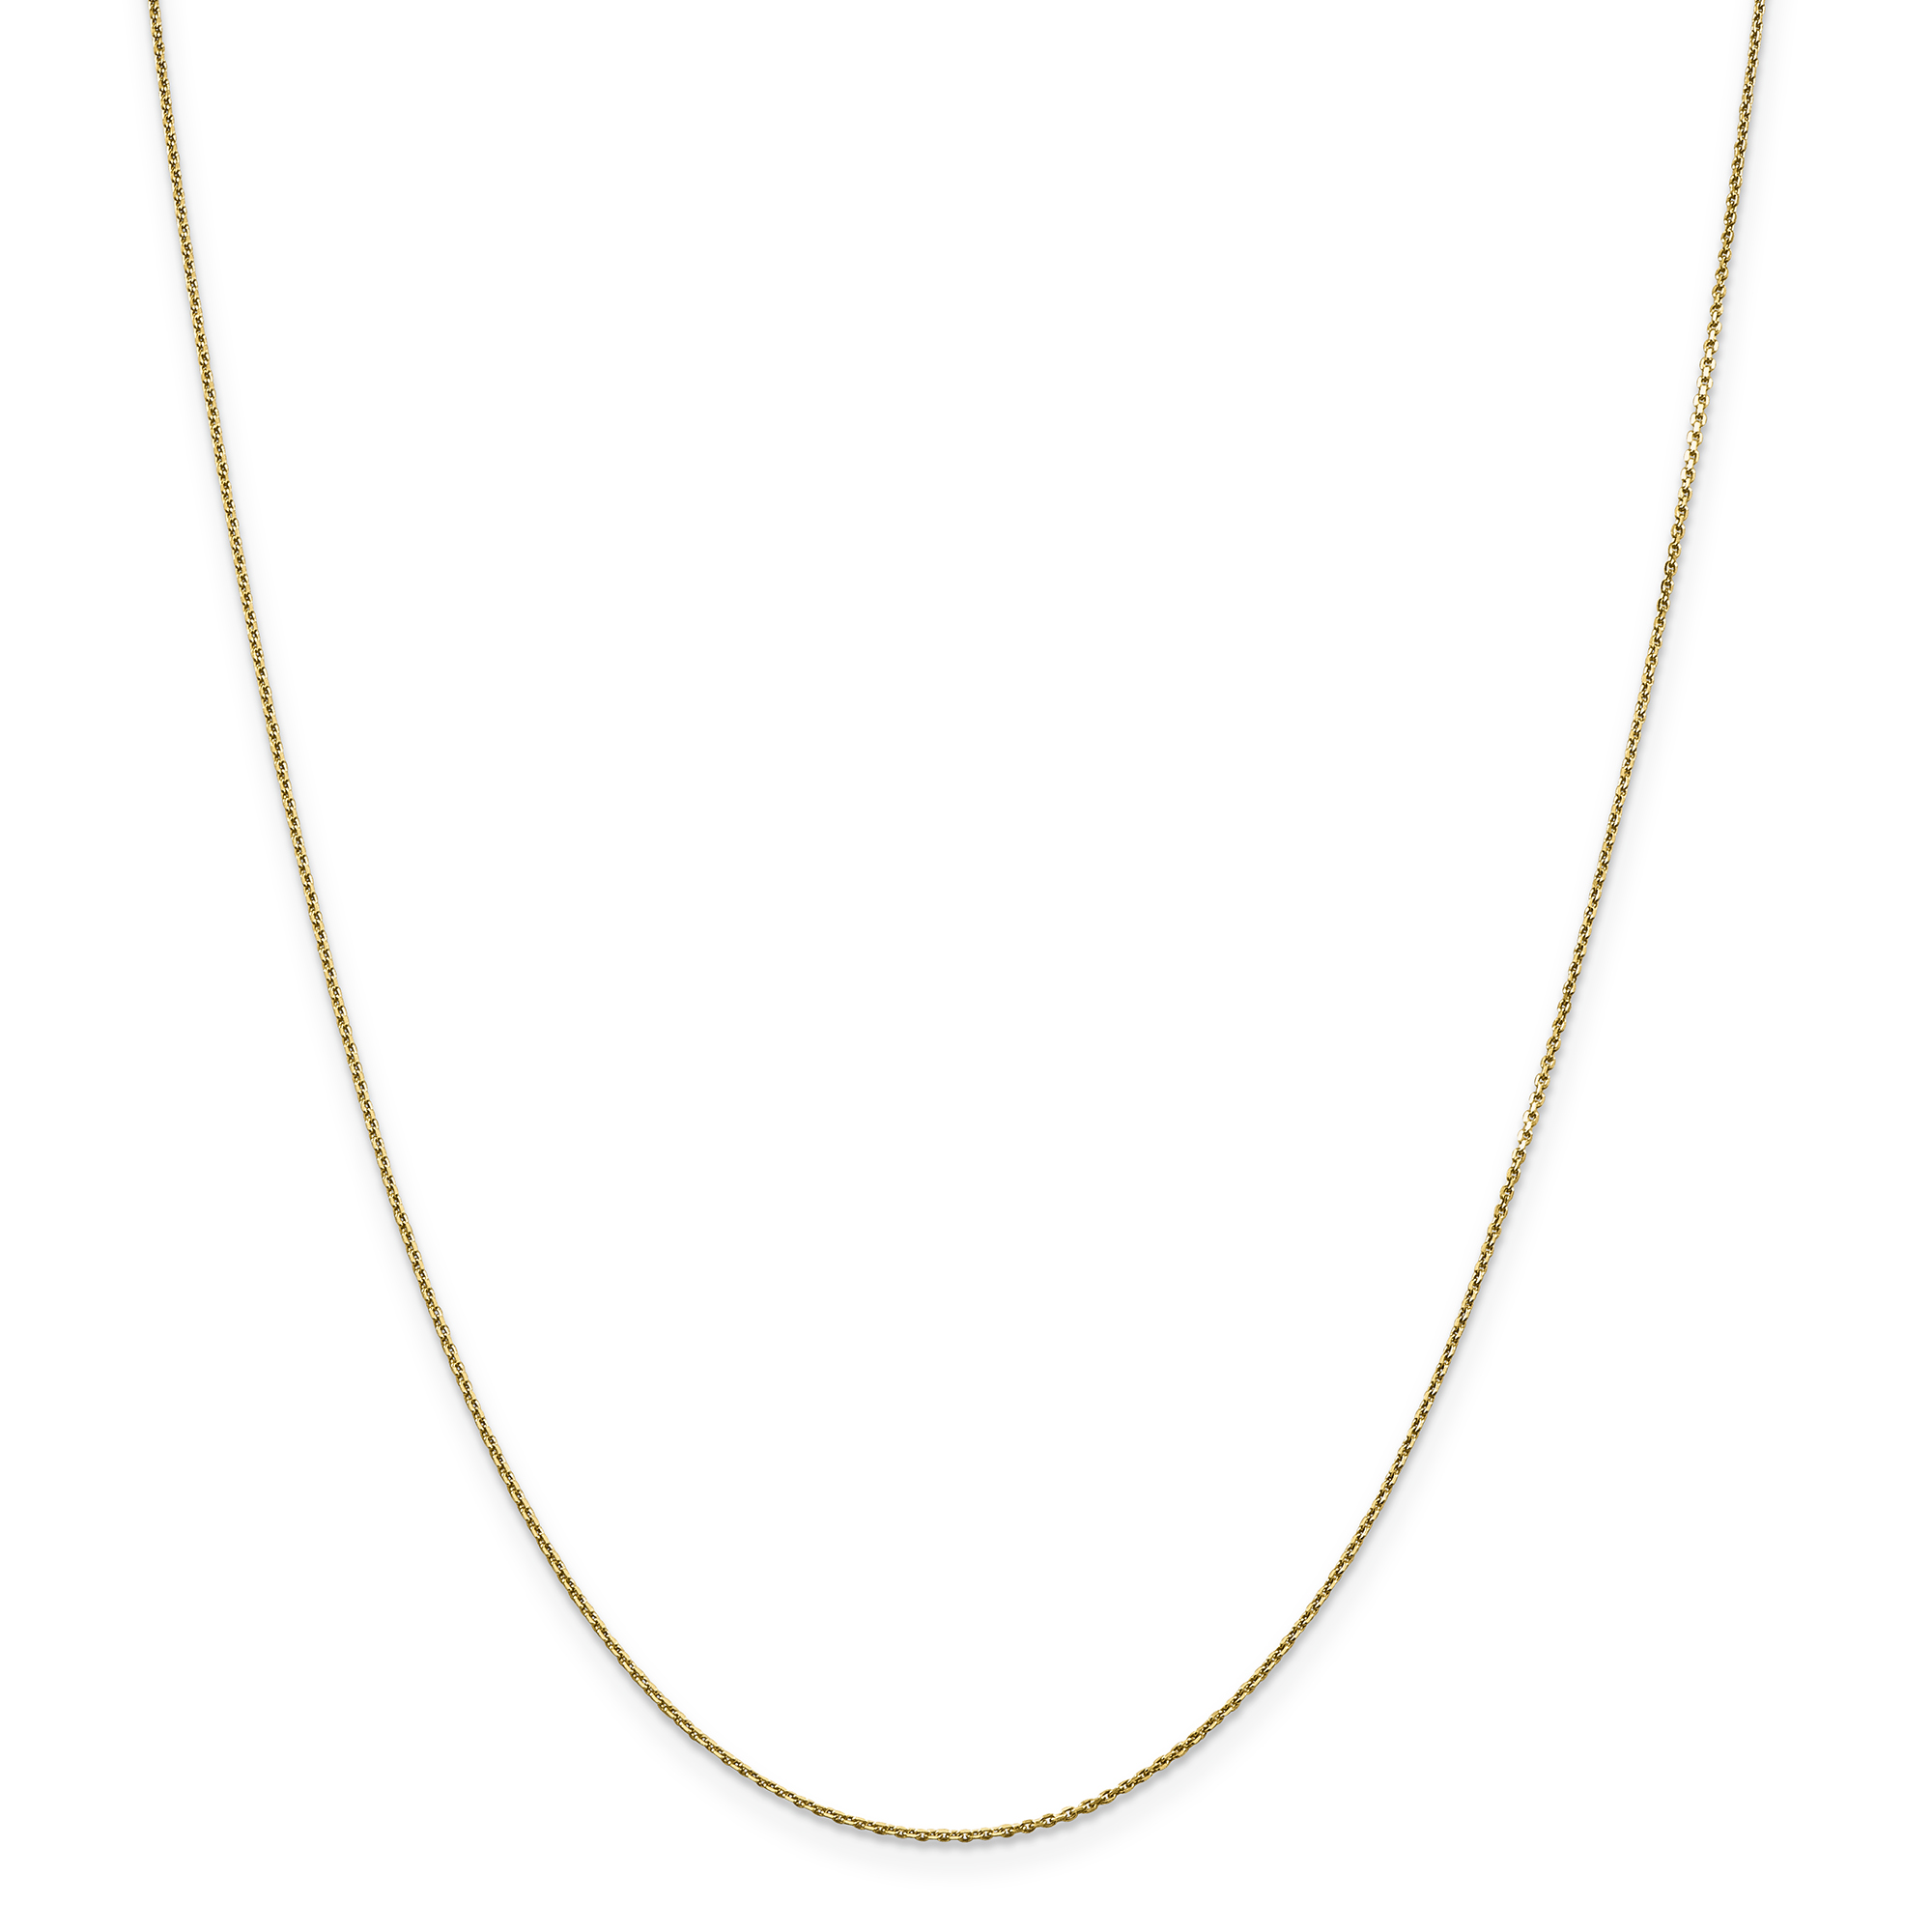 14k Yellow Gold .90mm Link Cable Chain Necklace 18 Inch Pendant Charm Round